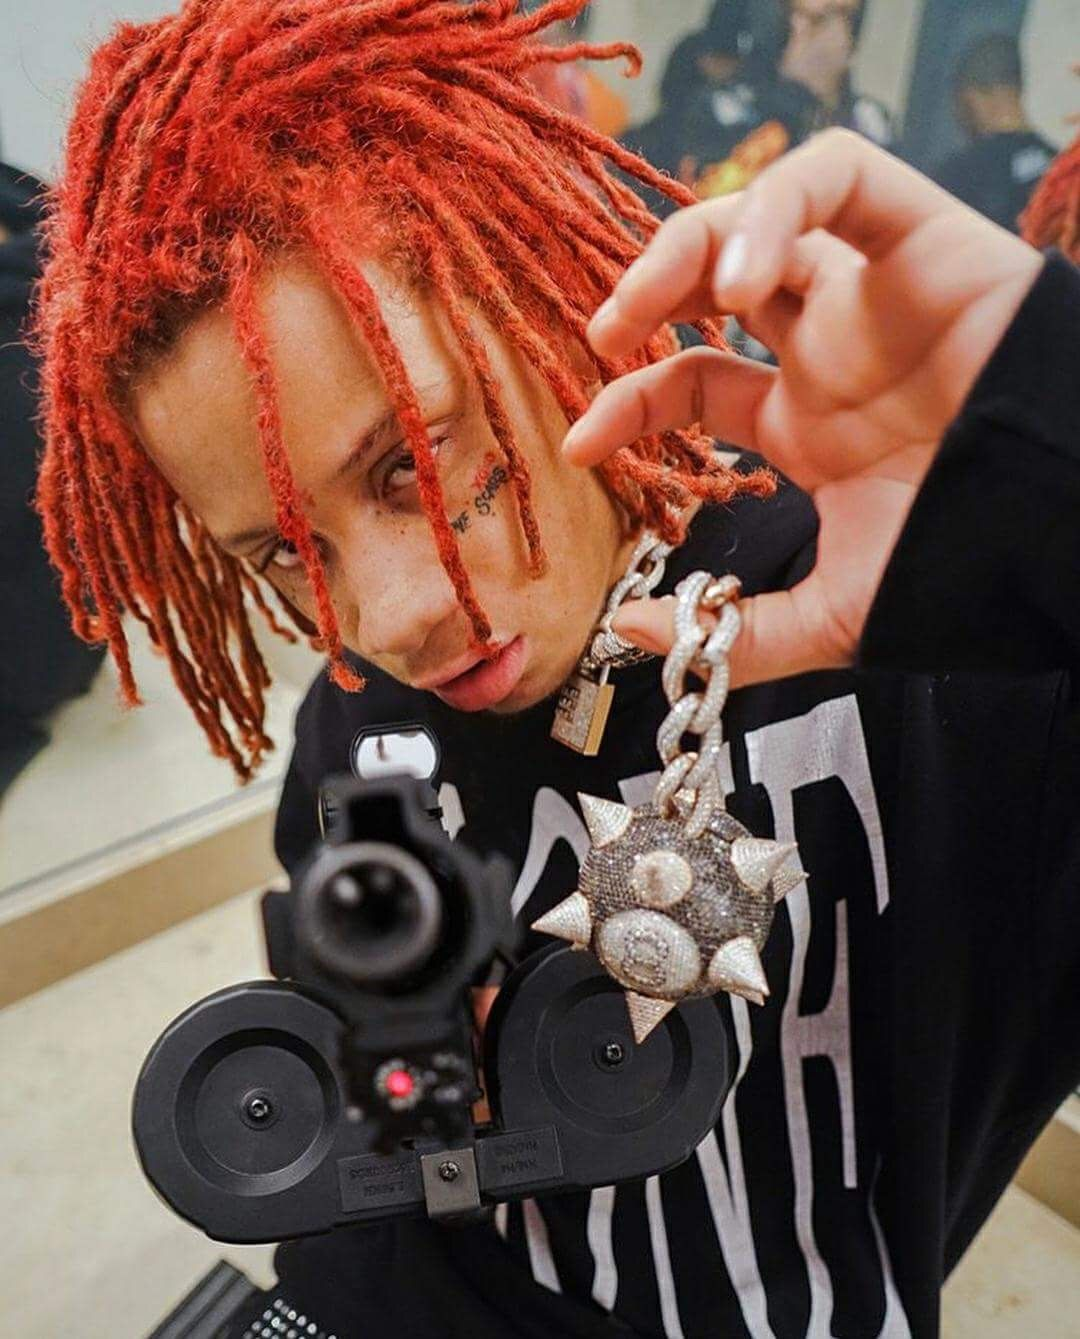 Pin by Bad lil Shawty on Trippie/Ayleks page (With images